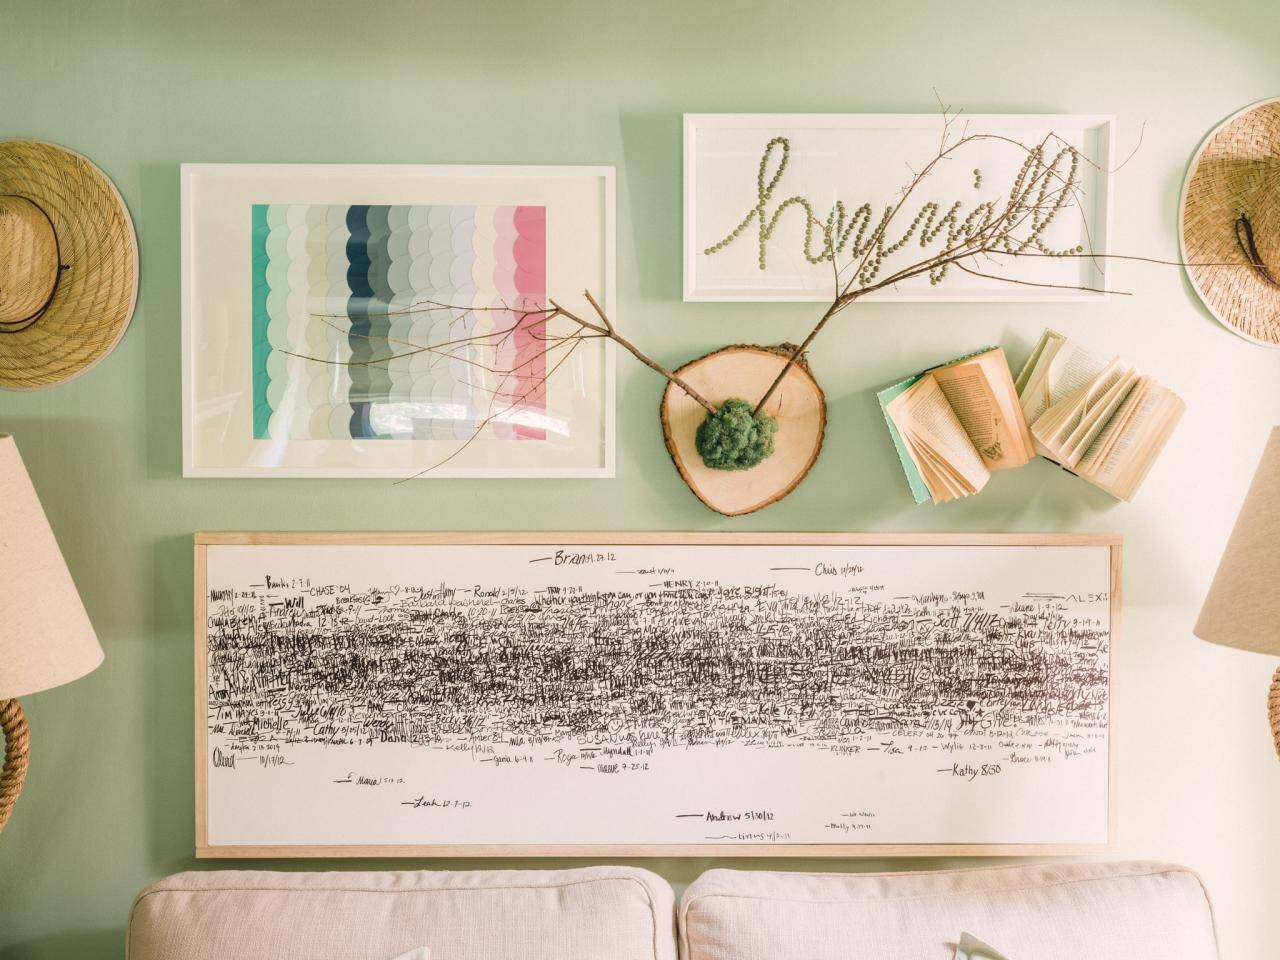 Terrific Diy Kitchen Wall Decor Ideas Diy Wall Art Projects Within Most Recently Released Pinterest Diy Wall Art (View 24 of 25)